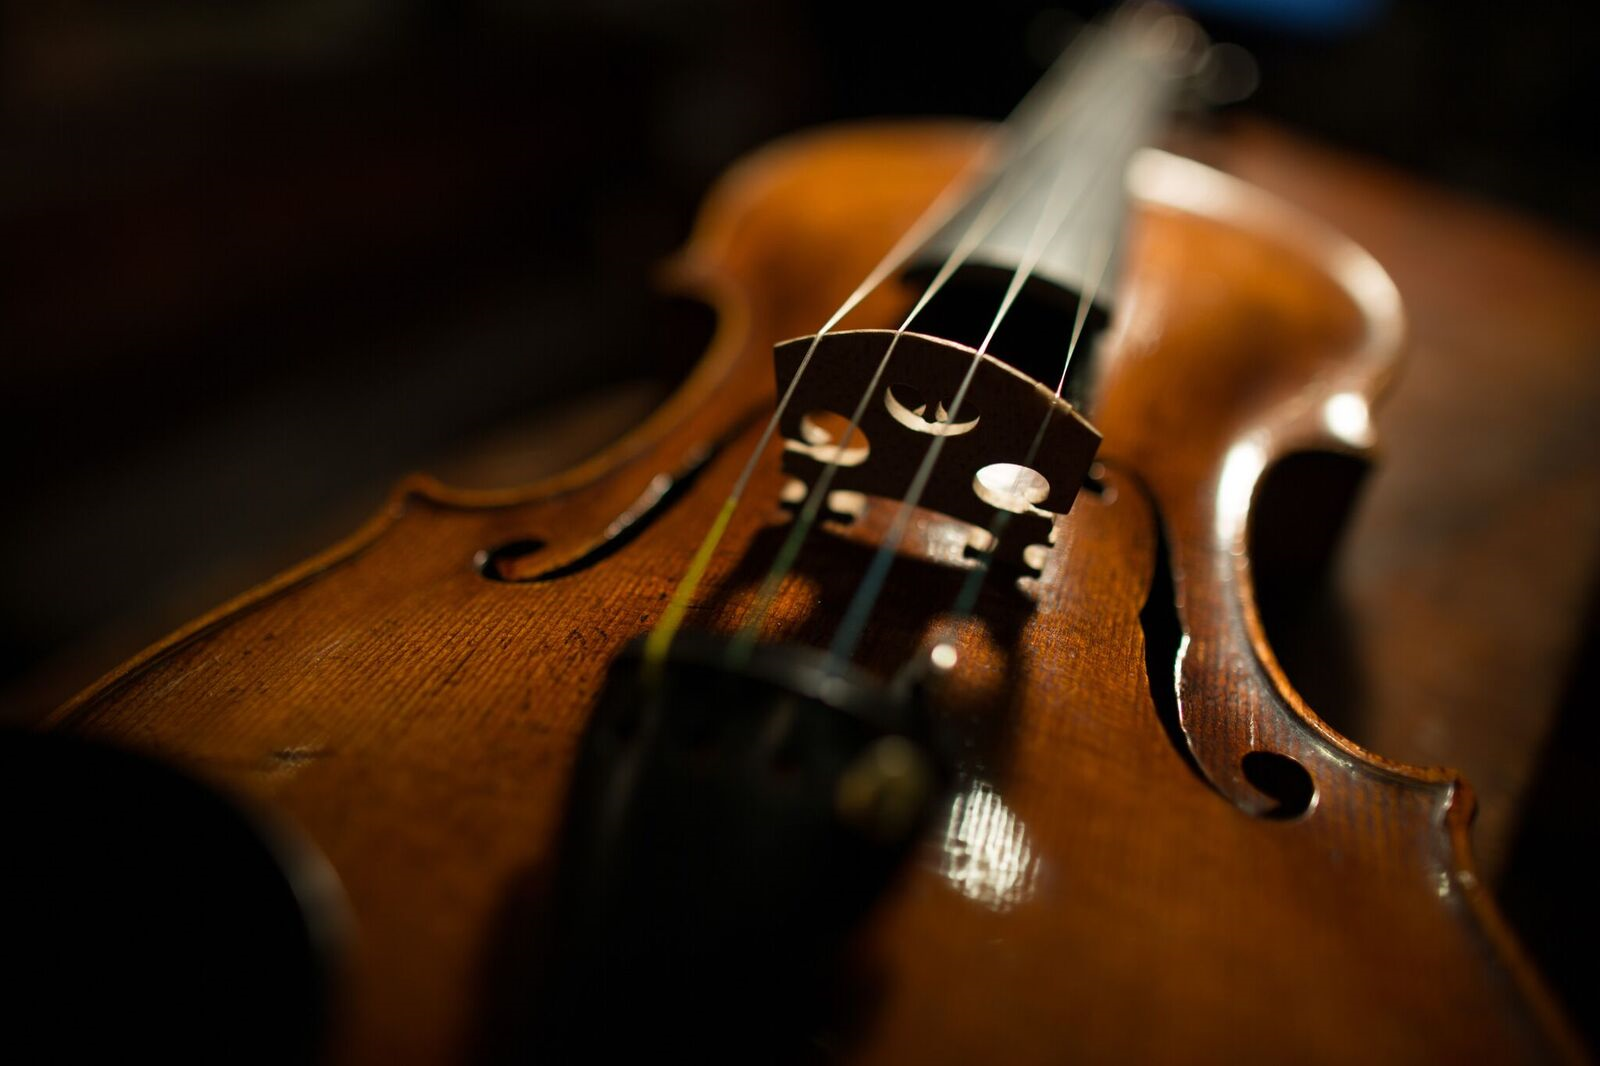 One of the violins from the Violins of Hope event. | Daniel Levin